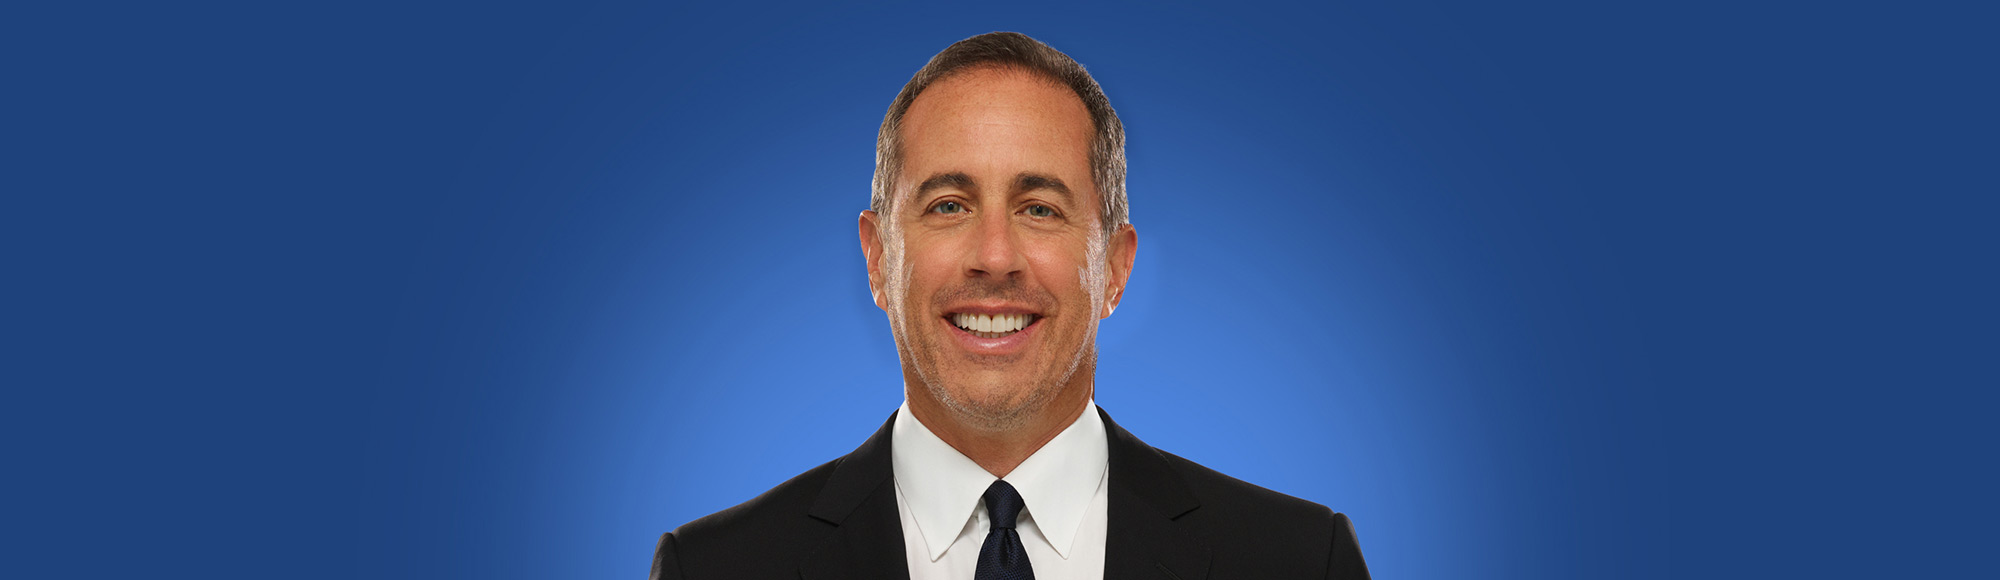 Jerry Seinfeld Las Vegas Tickets